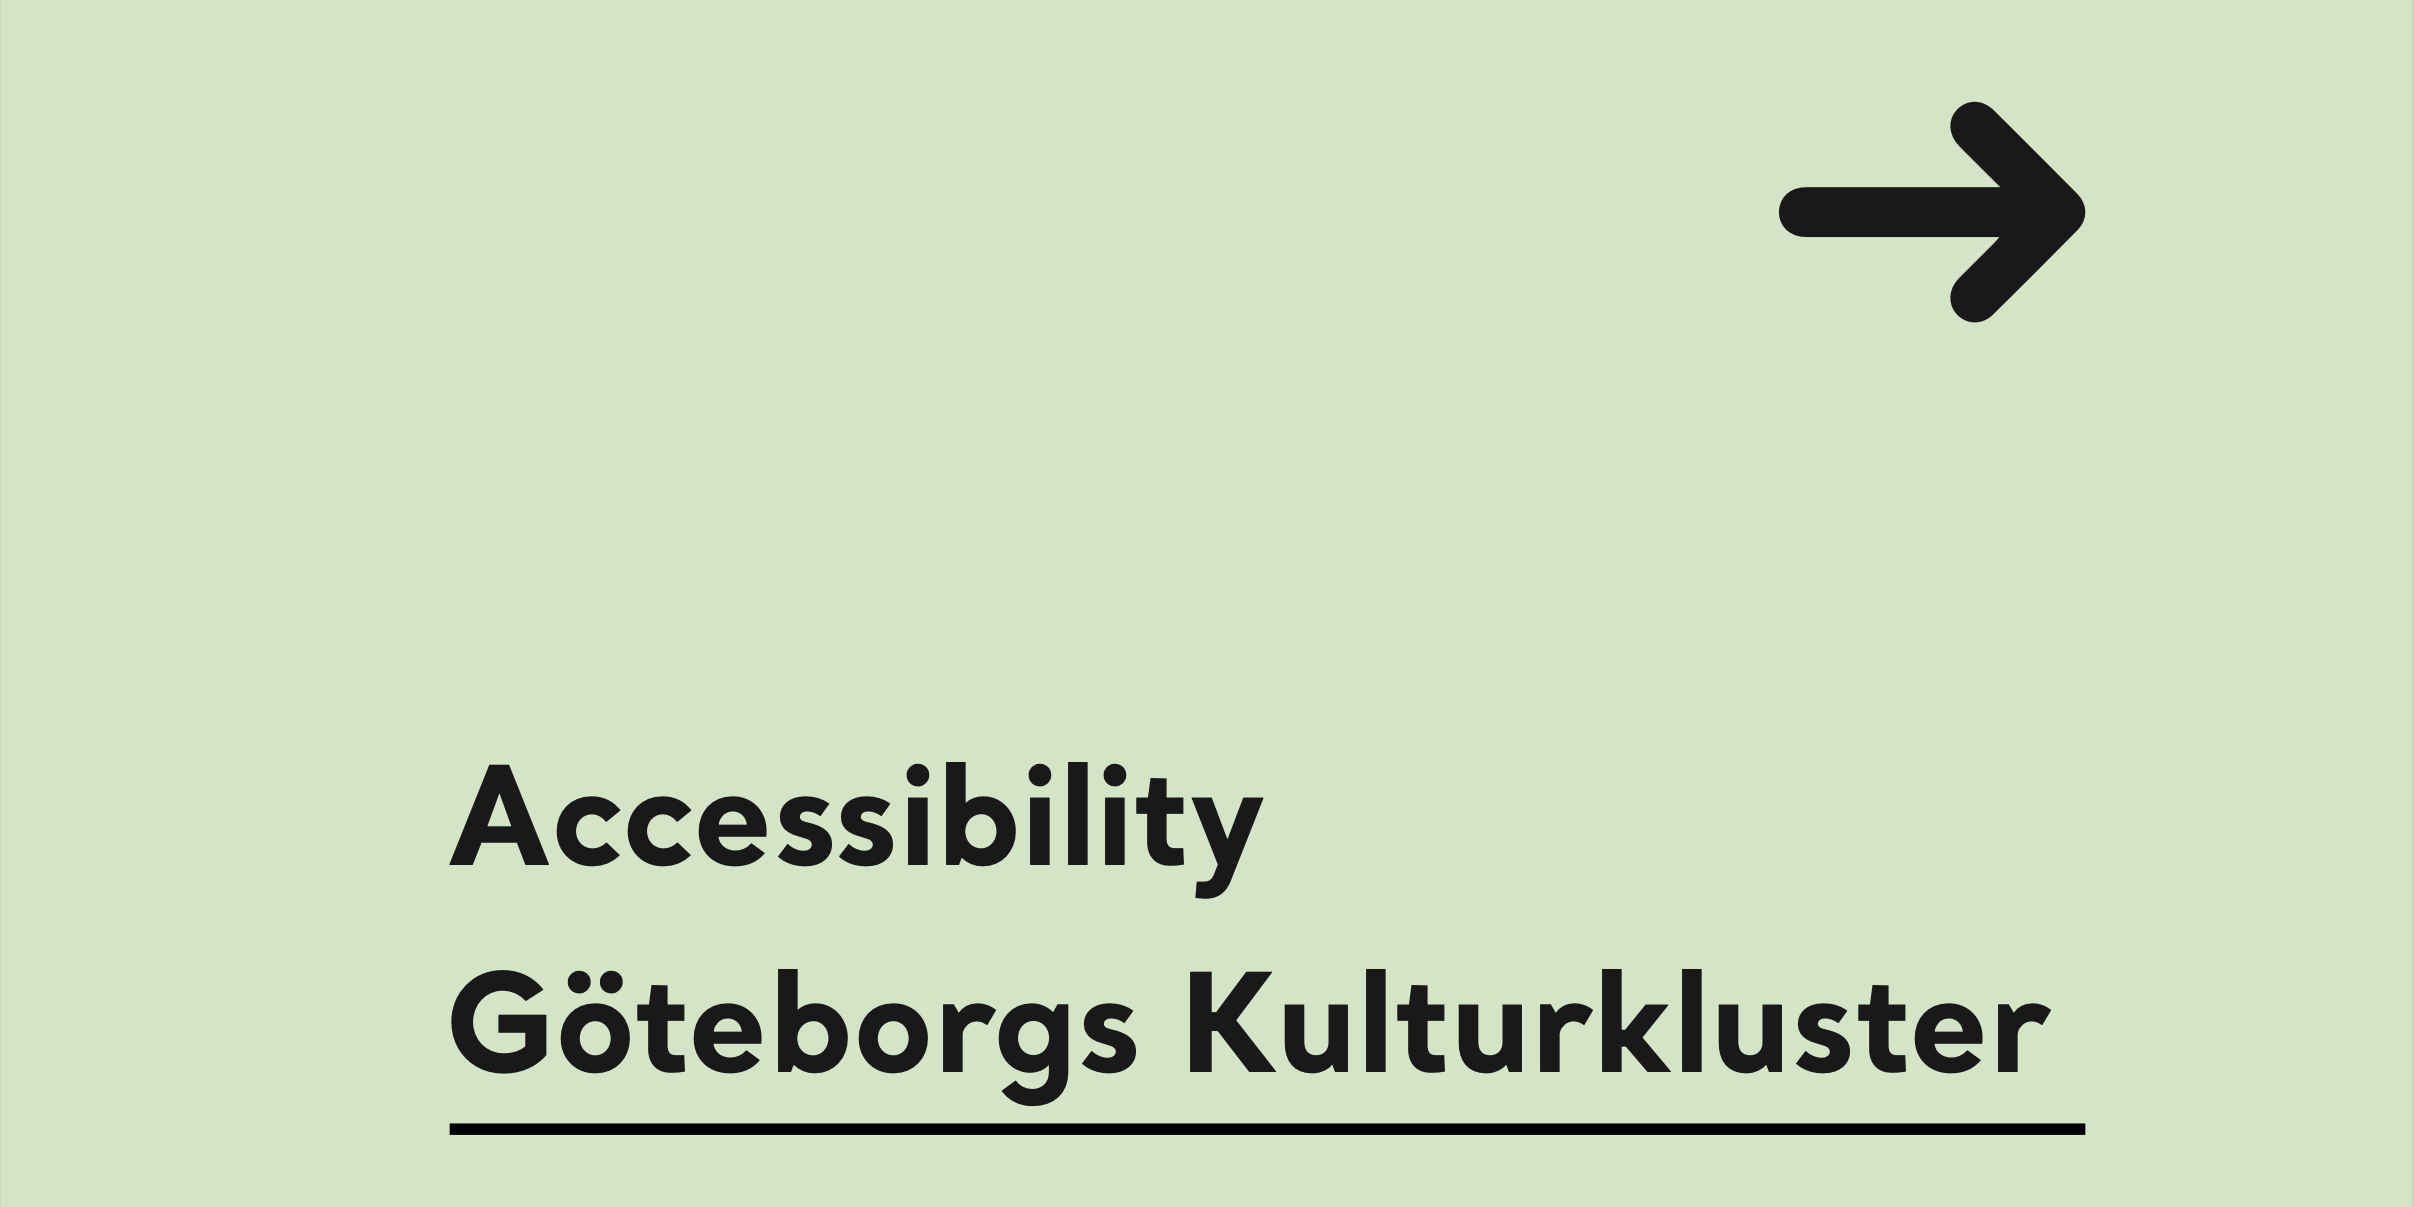 Against a mint green background there is a black text saying Accessibility Göteborgs Kulturkluster. In the top right corner there is a black arrow pointing to the right. Design: Emilia Wärff